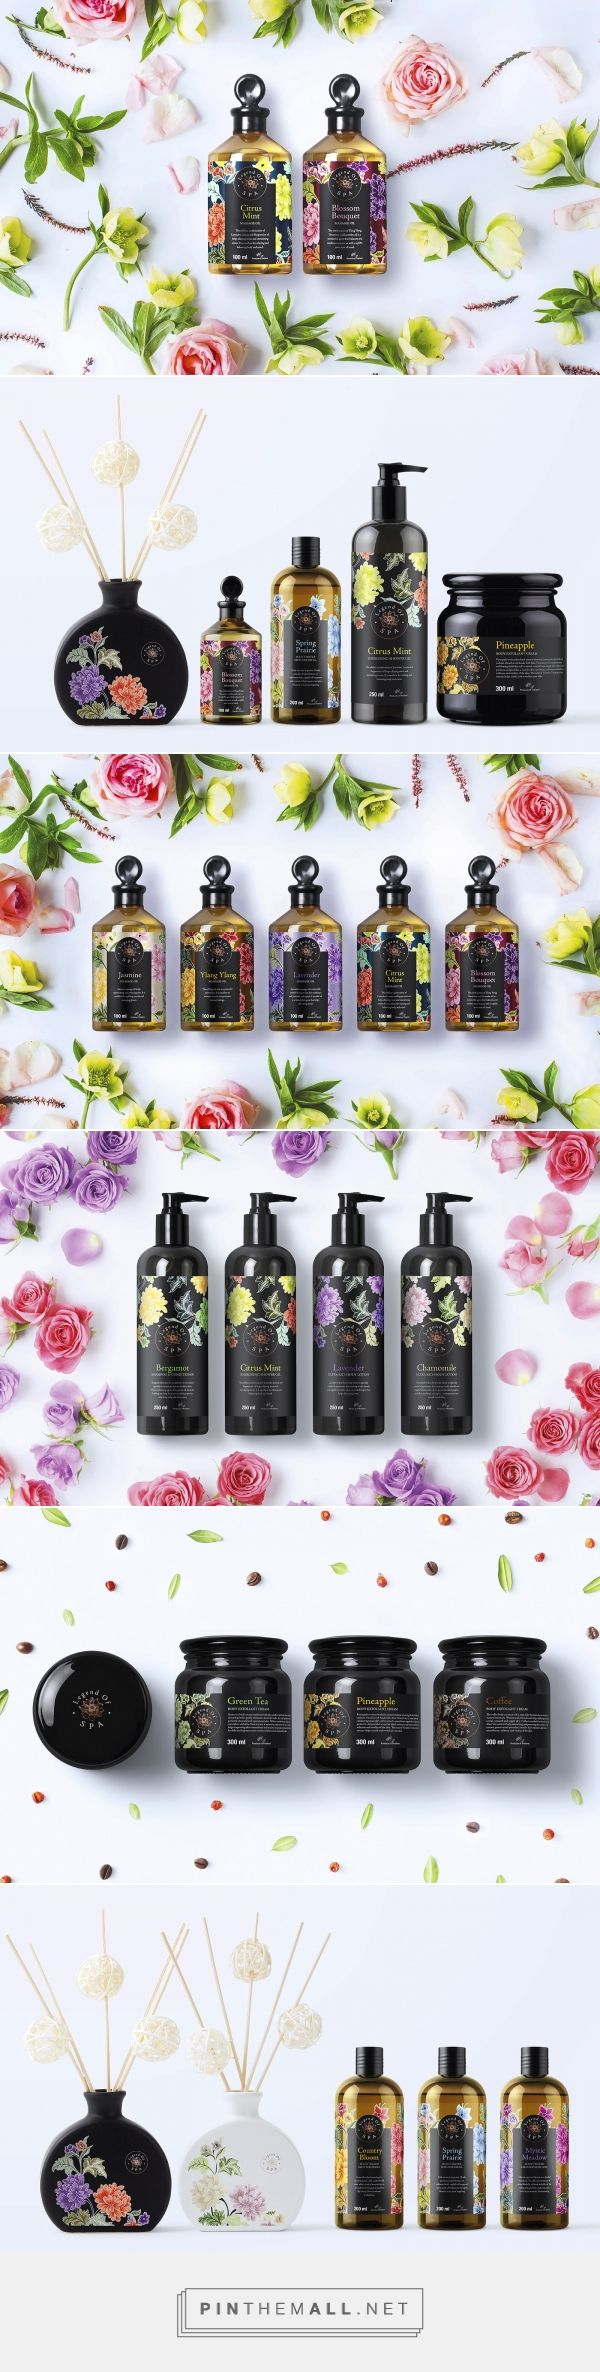 Legend of Spa - Packaging of the World - Creative Package Design Gallery - http://www.packagingoftheworld.com/2016/10/legend-of-spa.html